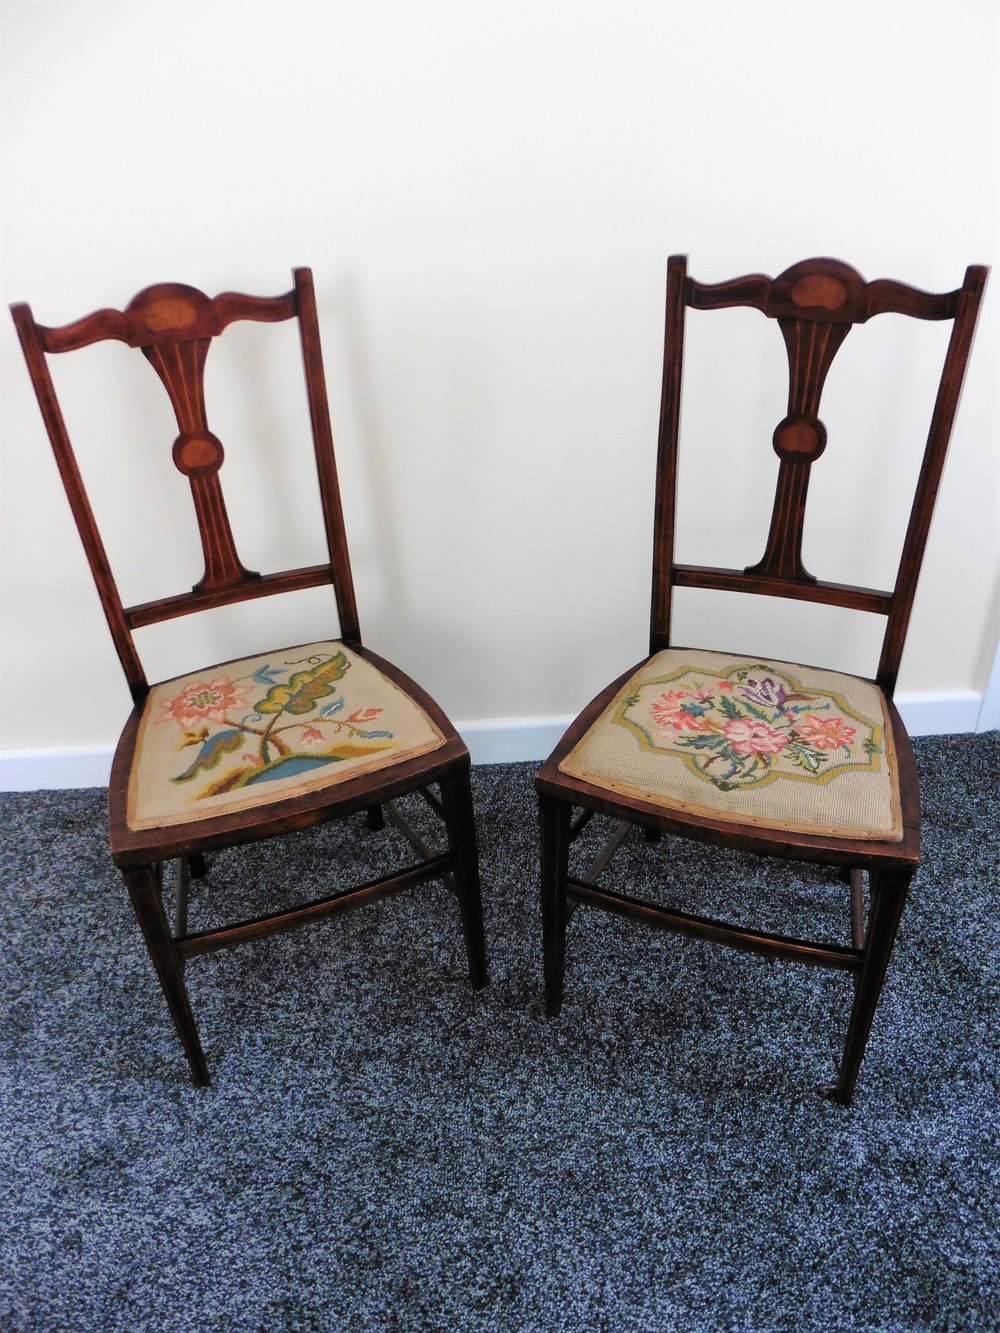 Pair of Rosewood Inlaid Embroidered Bedroom Chairs Antique ...